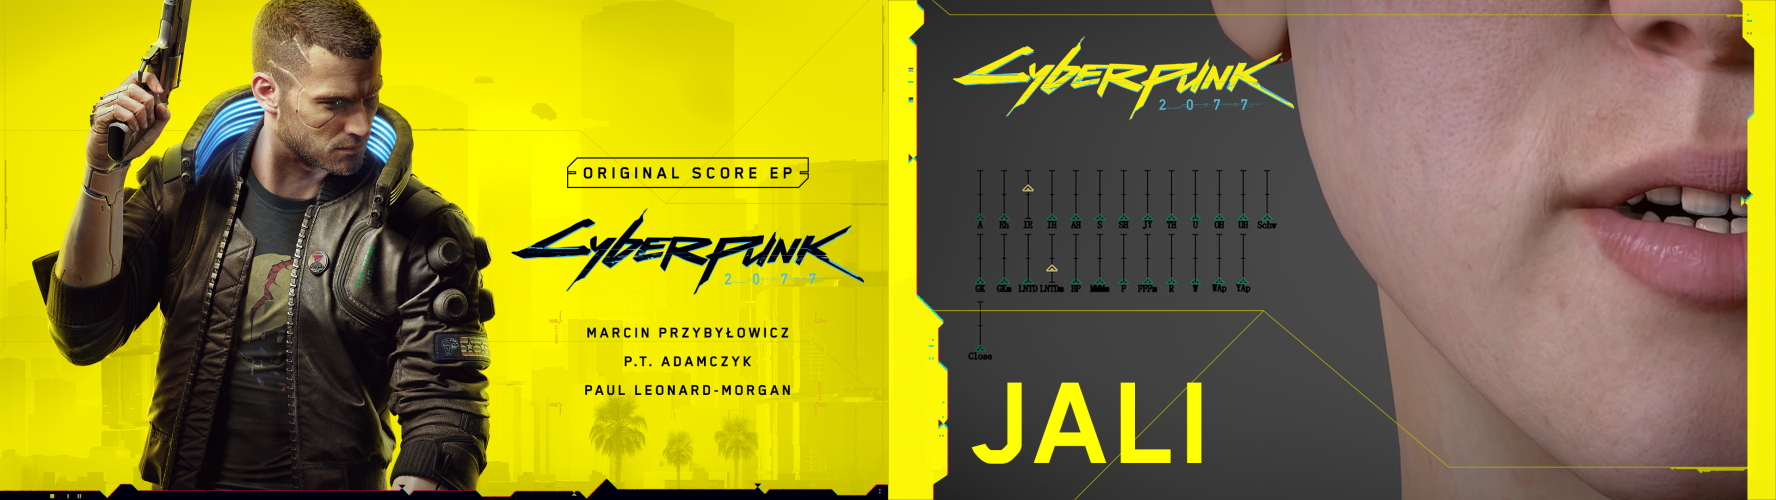 New Night City Wire showcases Johnny Silverhand, gameplay, and featurettes for Cyberpunk 2077! - Image 1